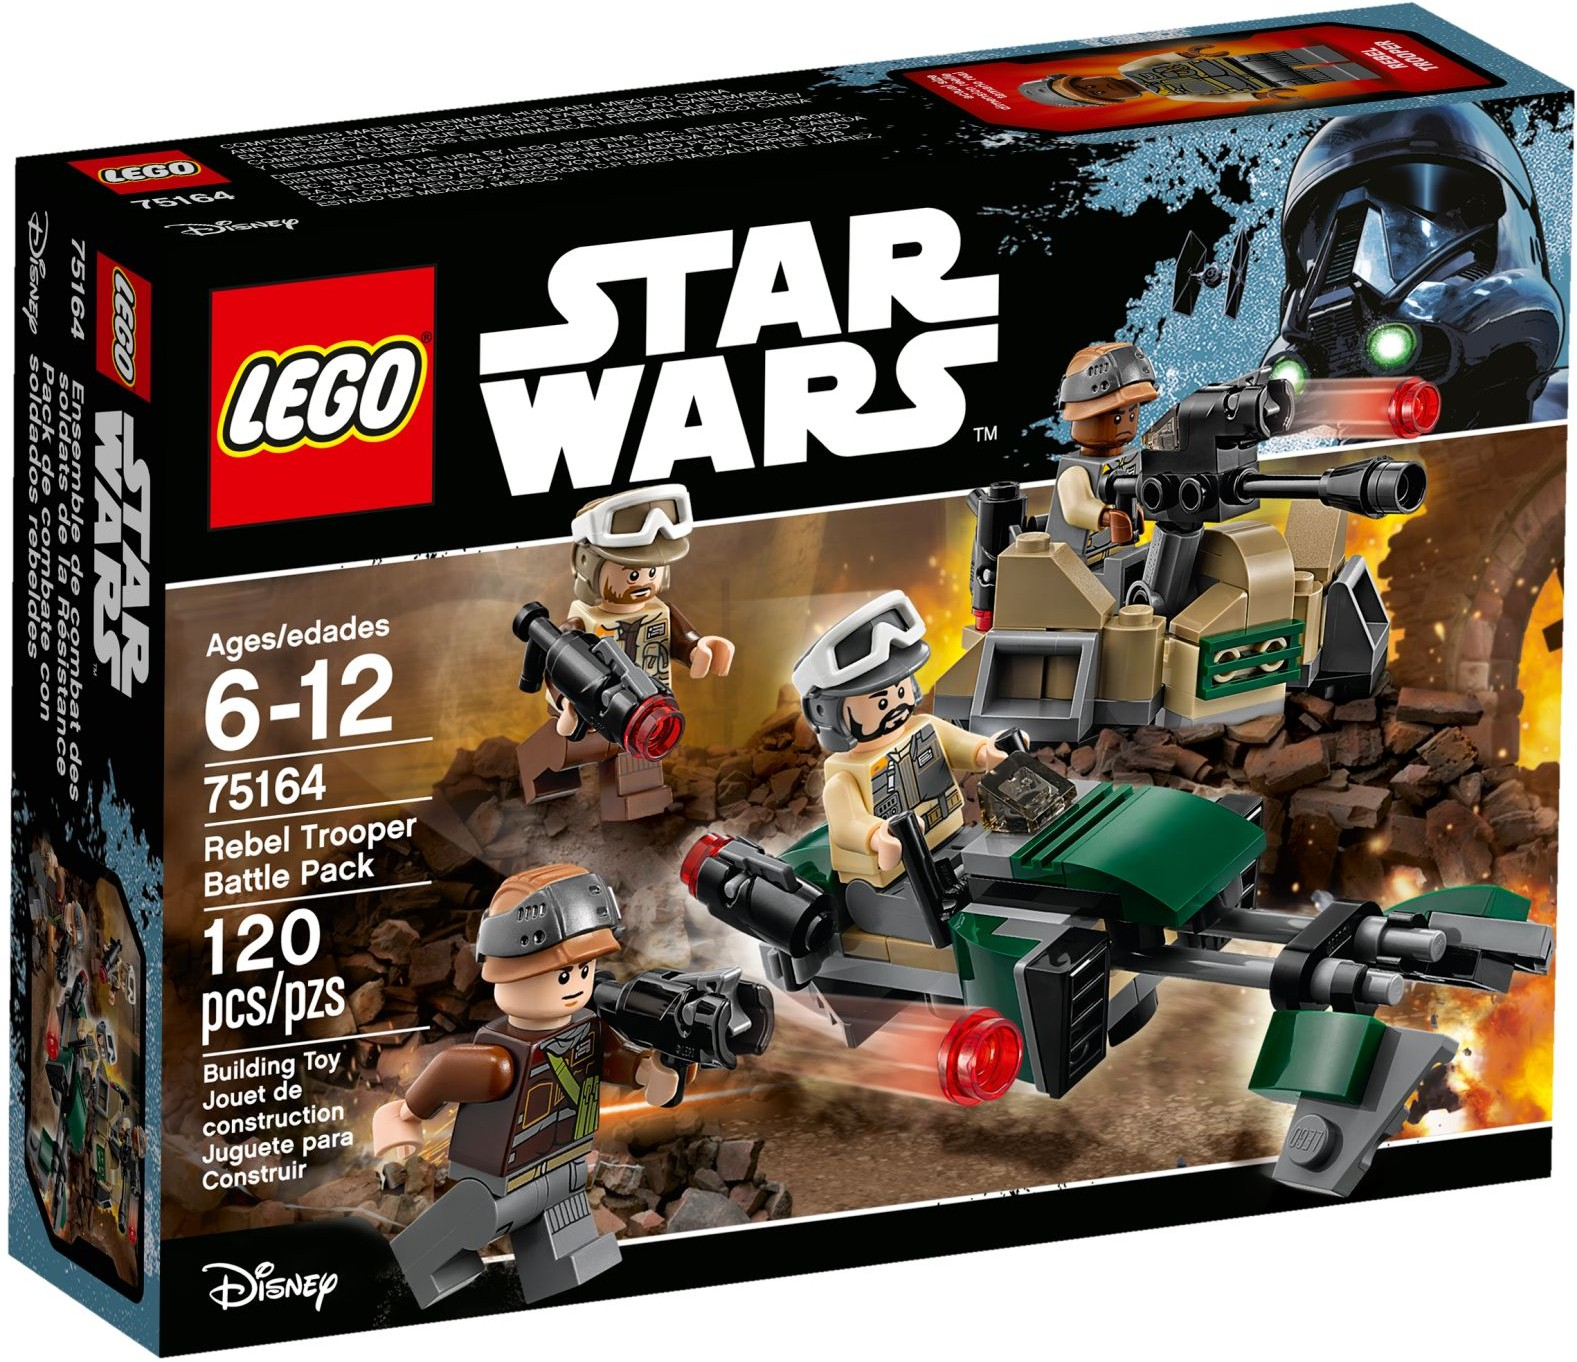 75164 LEGO® Star wars Rebel Trooper Battle Pack